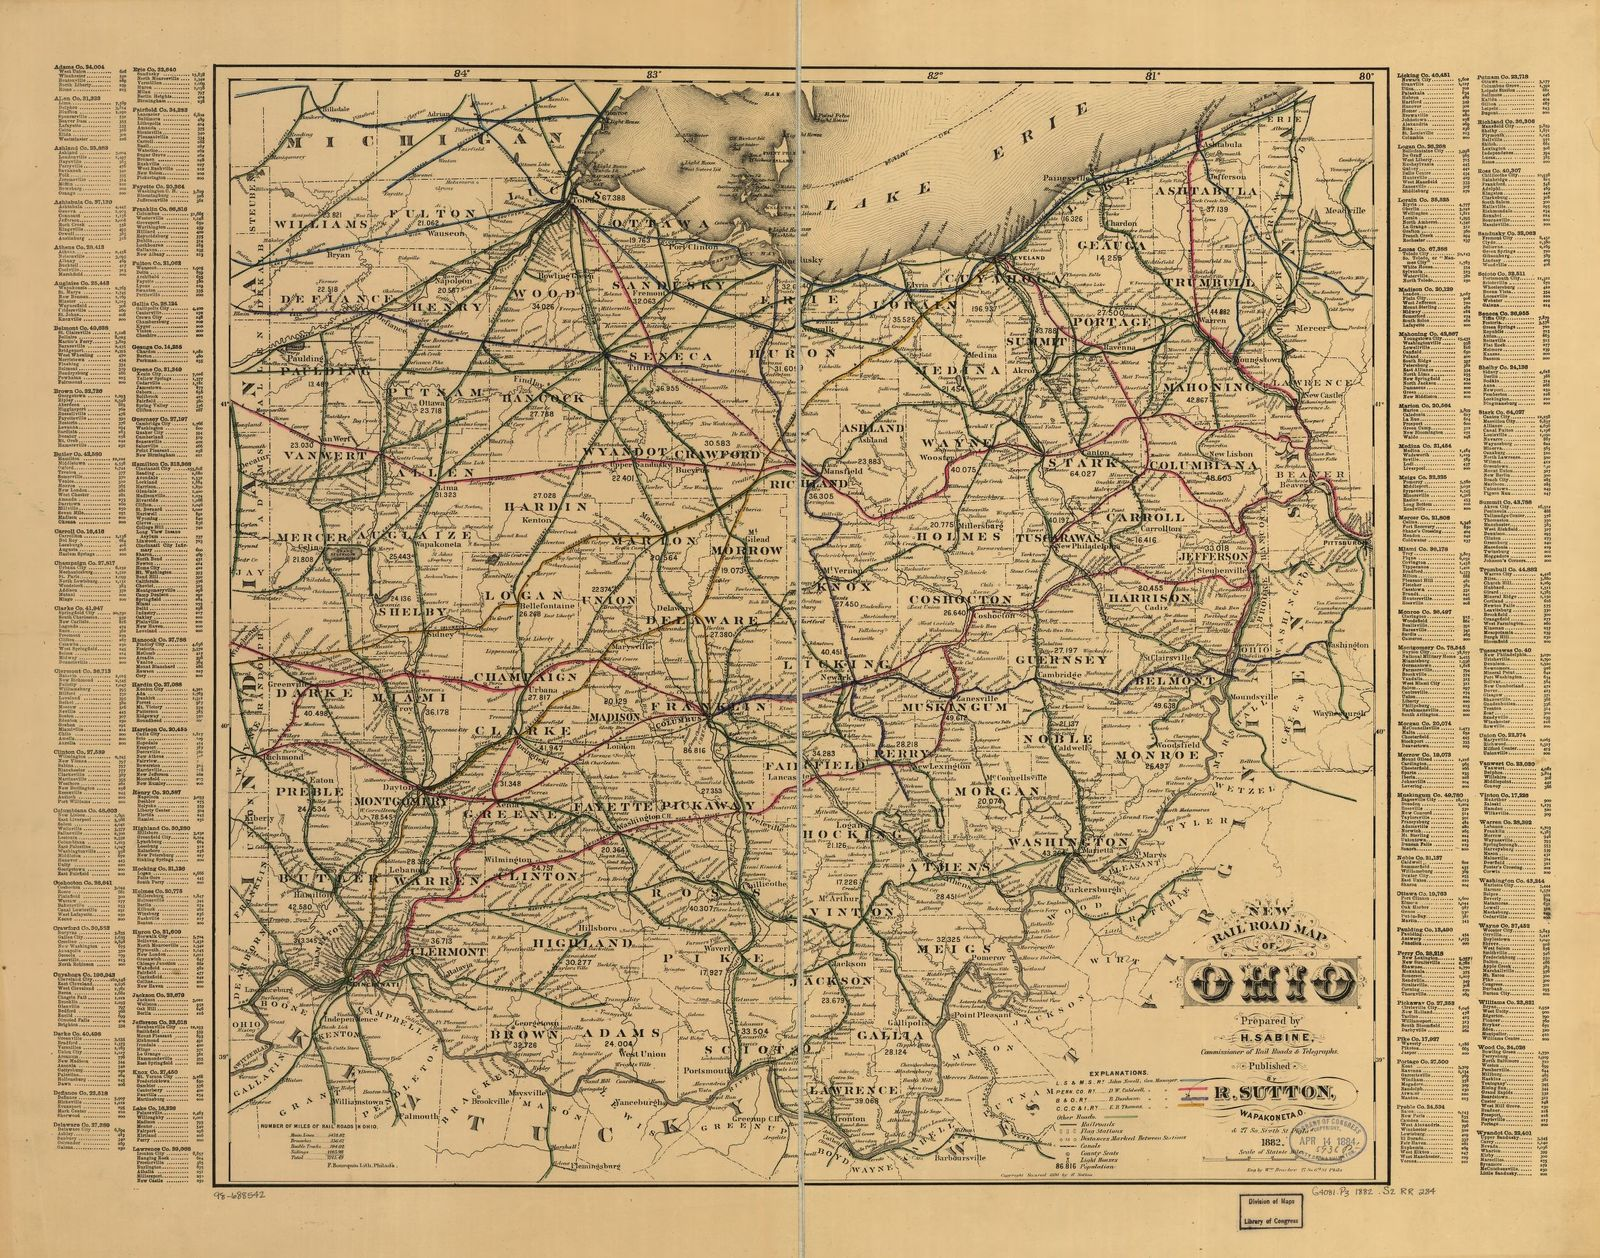 Map Of Ohio With Roads on map of united states with roads, map of puerto rico with roads, map of atlanta with roads, map of jacksonville with roads, ohio county maps with roads, map of barbados with roads, map of haiti with roads, map of mass with roads, map of texas with roads, map of little rock with roads, map of france with roads, map of ireland with roads, map of florida with roads, map of long island with roads, map of nigeria with roads, map of eastern usa with roads, map of north america with roads, map of california with roads,